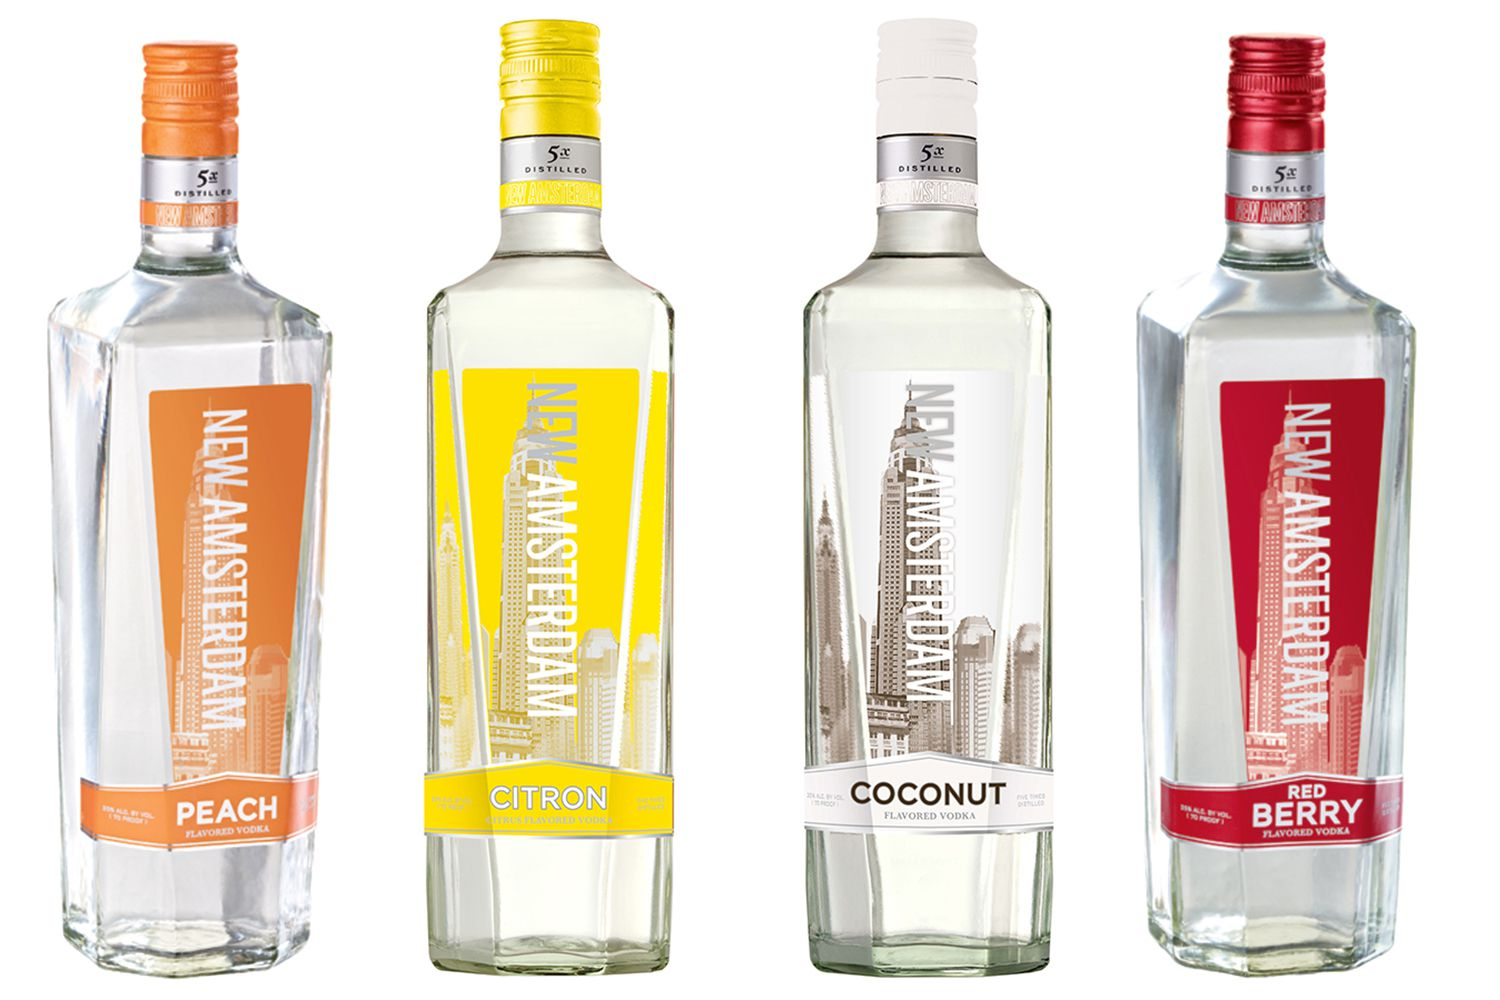 New Amsterdam makes straight-up vodka and flavored vodkas